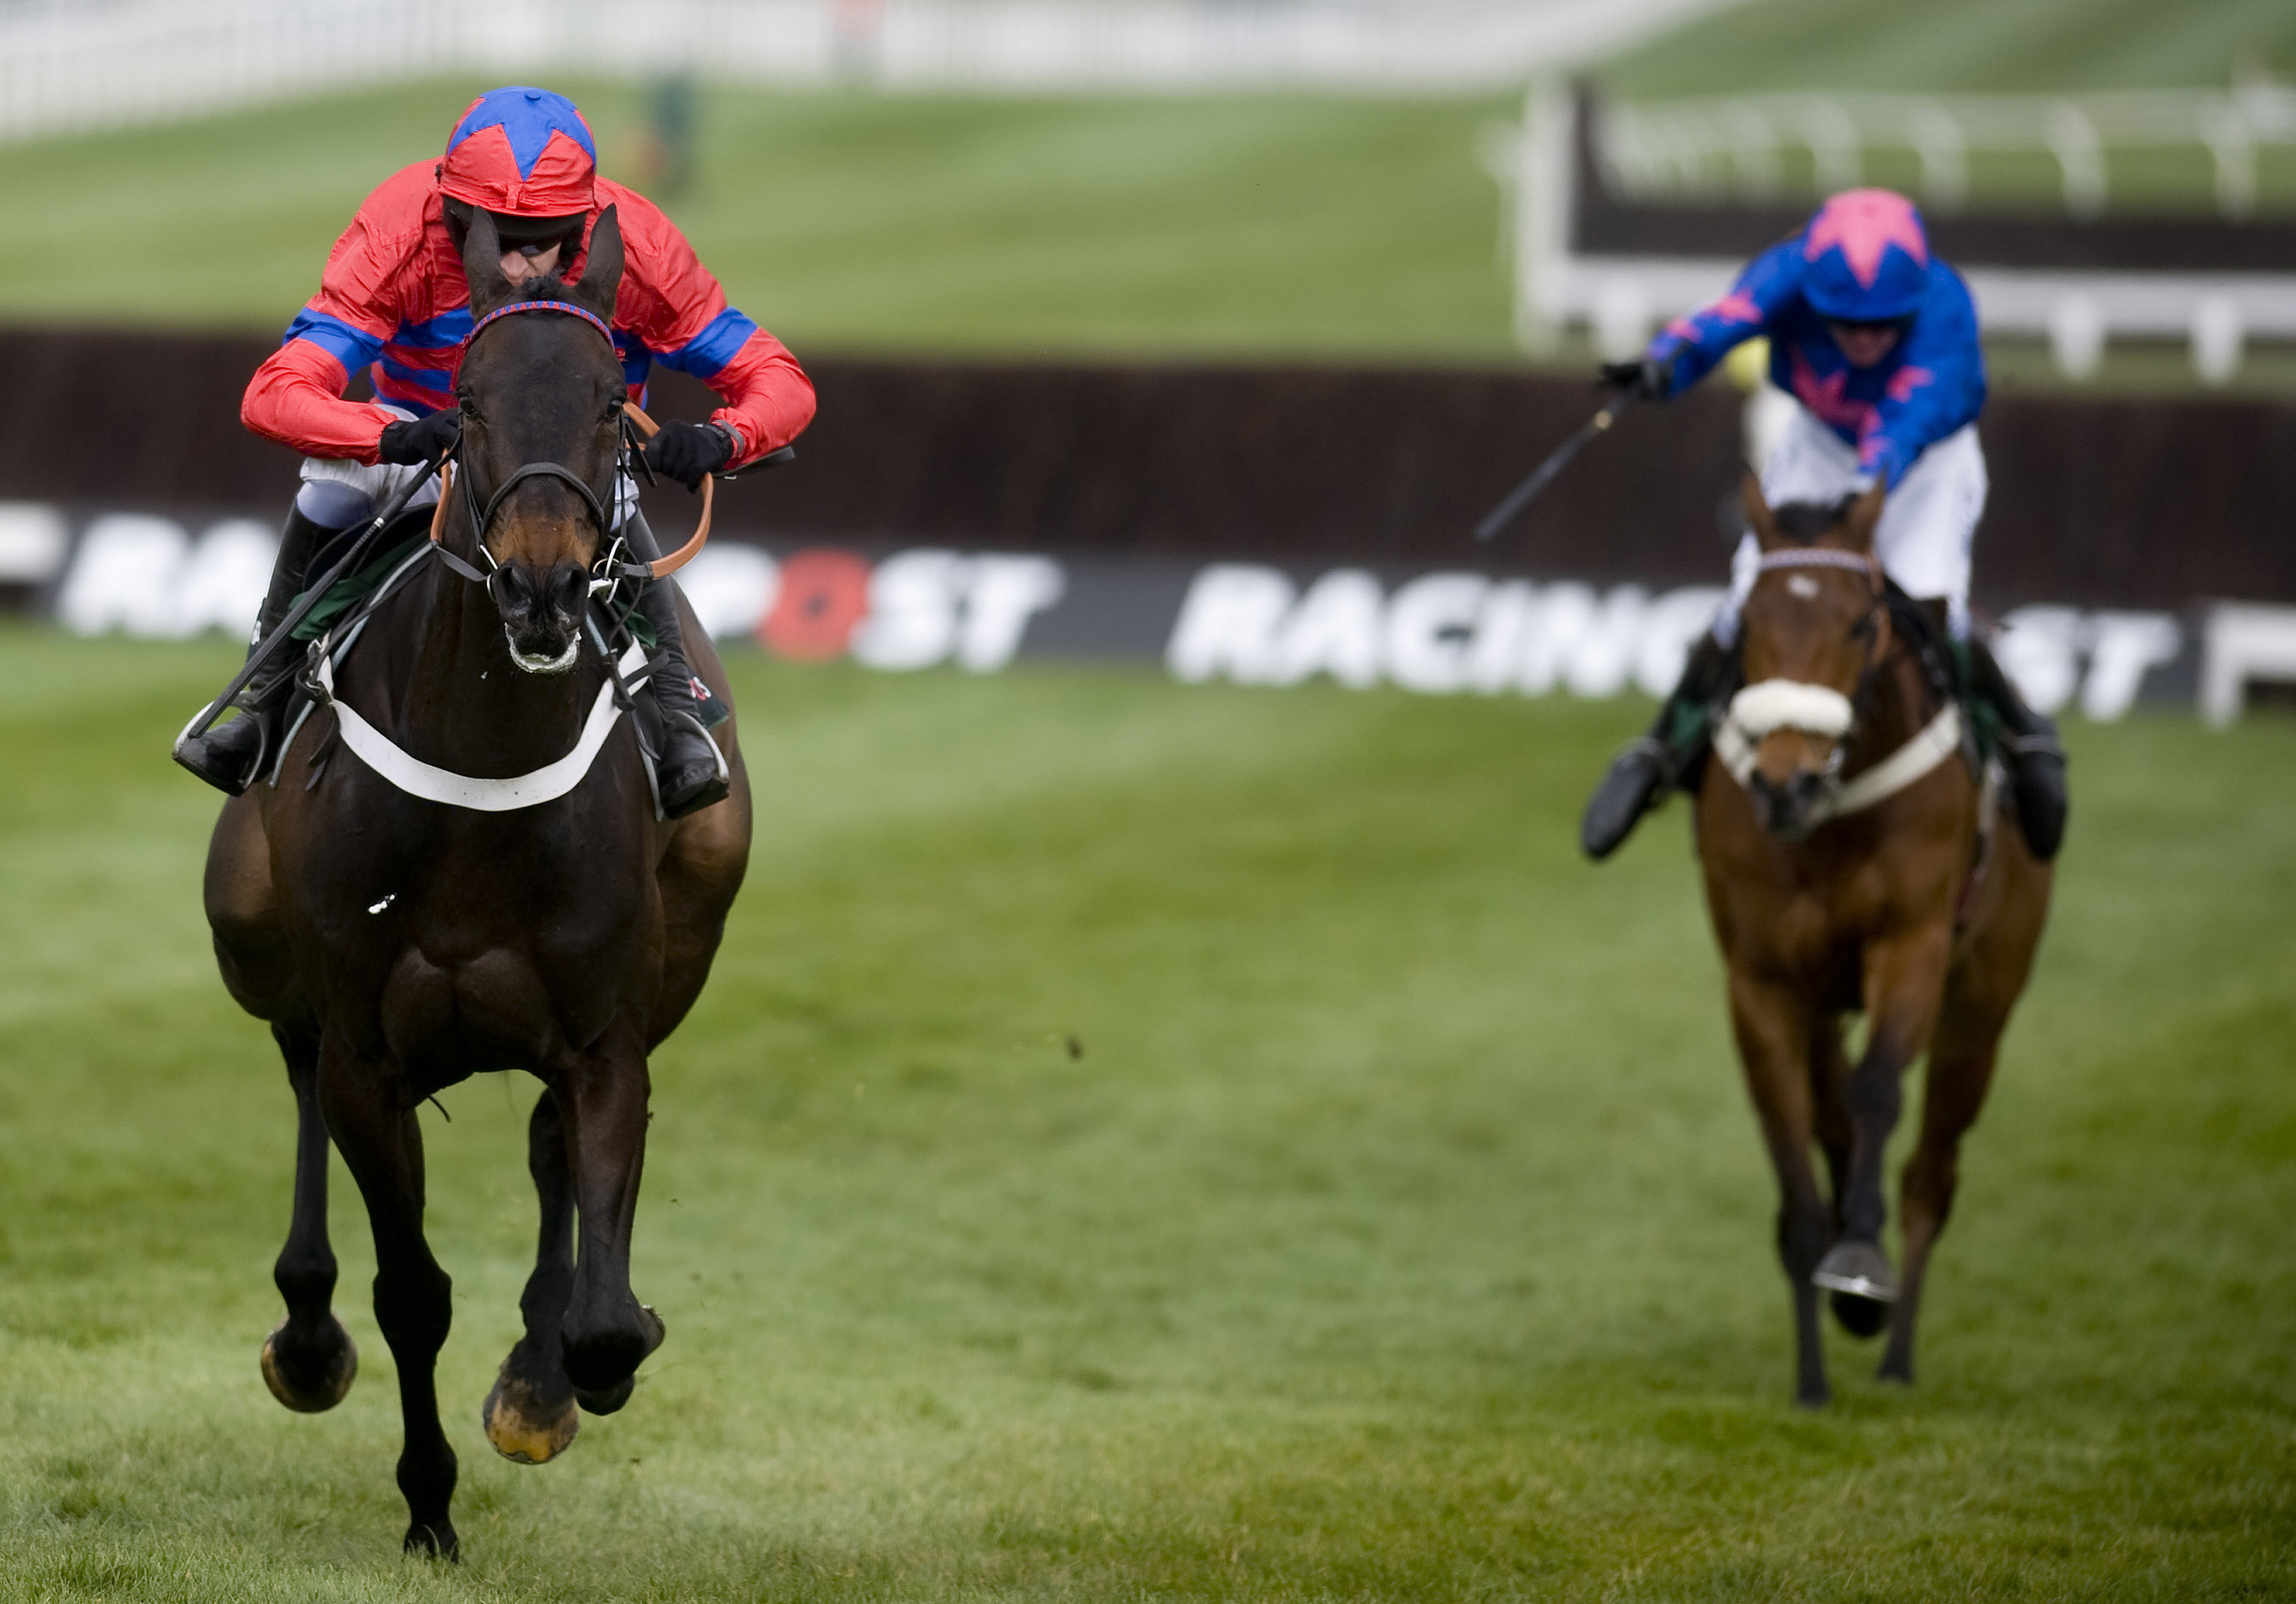 There will be no prestigious New Year's Day race meeting at Cheltenham this year (Picture: Getty)